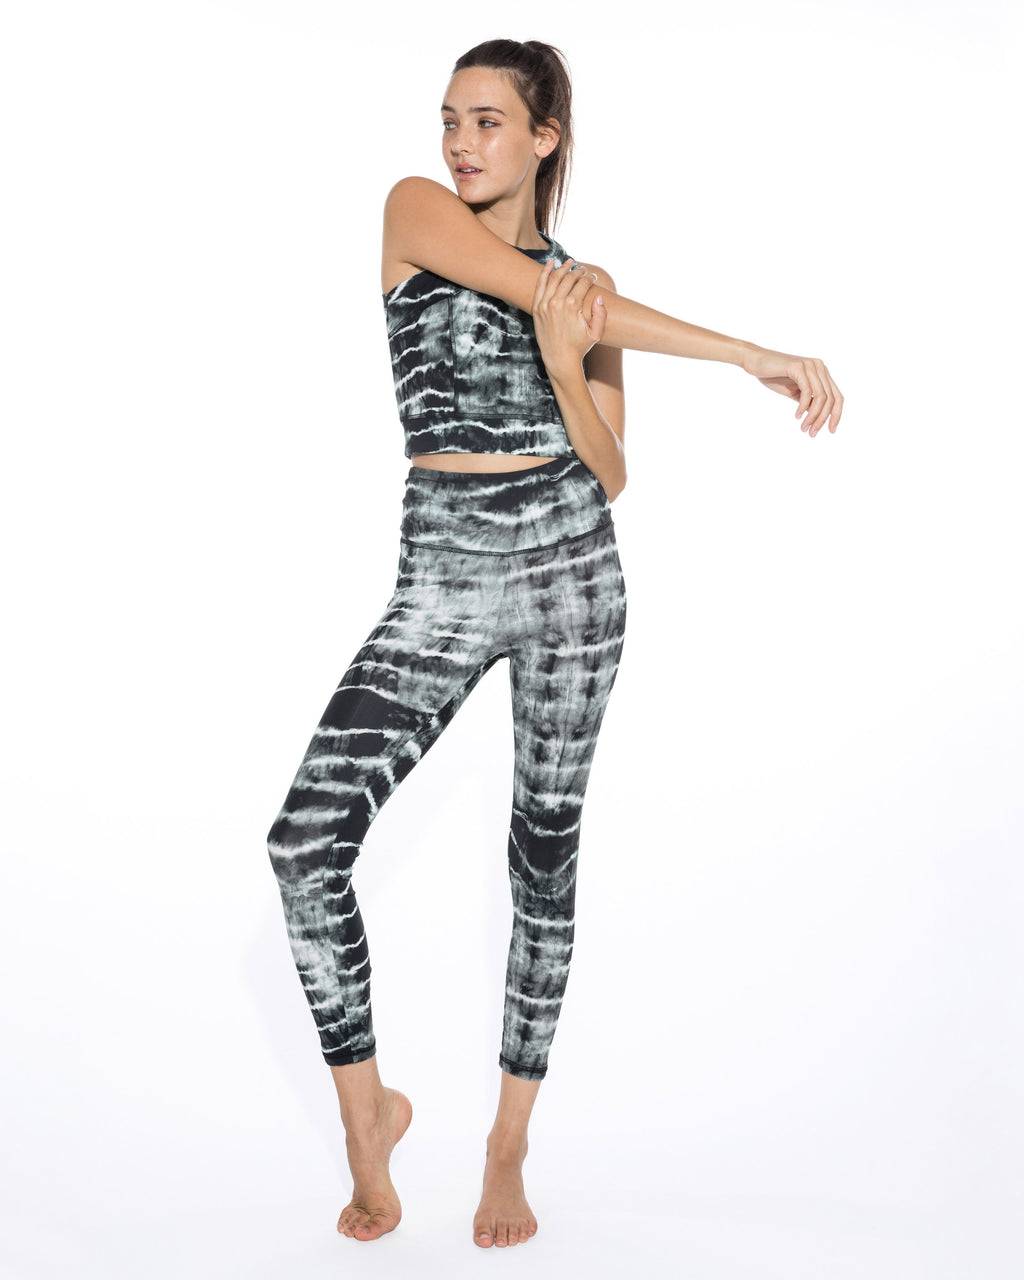 CP18610 - TIE DYE LEGGINGS - bottoms - pants - Fitness and style have never paired so well together. These leggings are printed in black and white tie dye with a high wasit and hit just above the ankle. Add 1 line break Stylist tip: Pair with the matching top for a monochrome look.